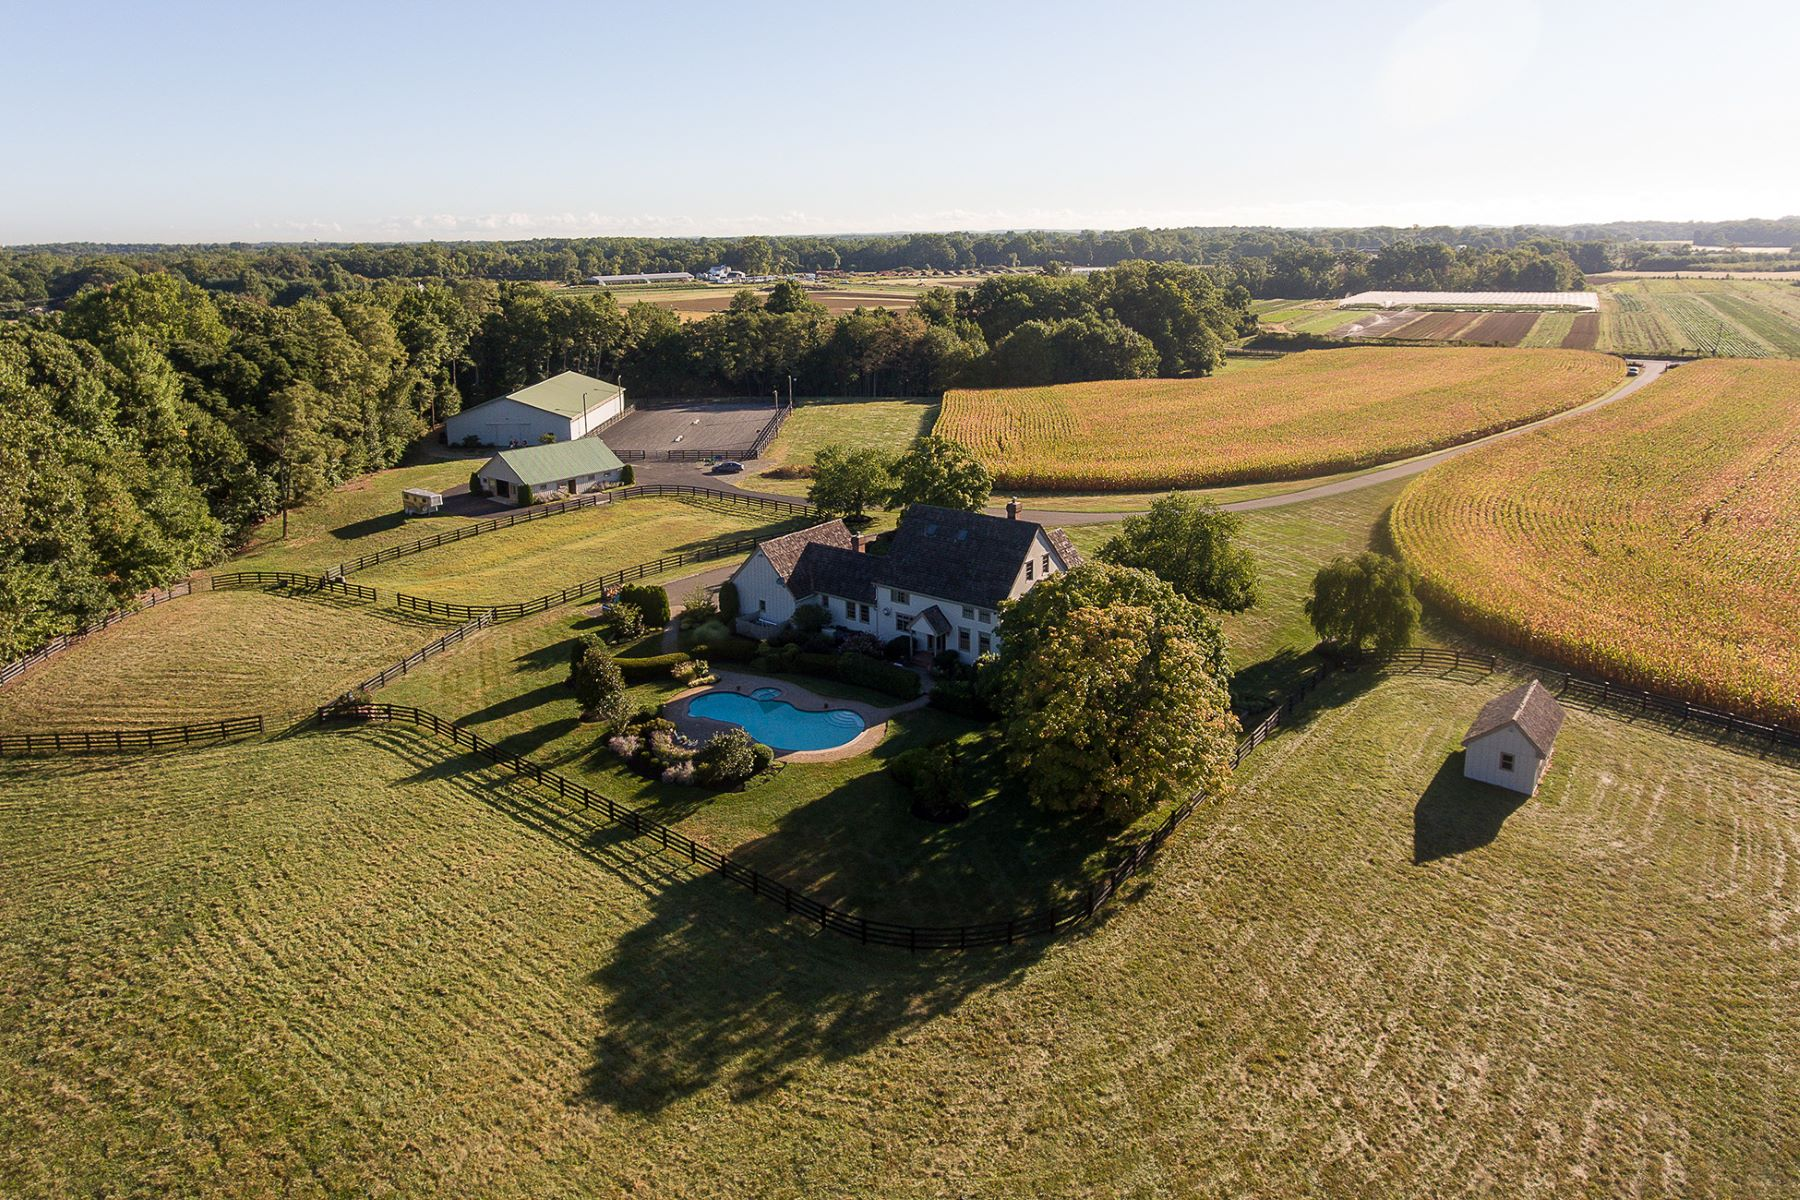 Single Family Home for Sale at Earthshine Farm: An Equestrian Dream 28 Harker Road Chesterfield, 08515 United States